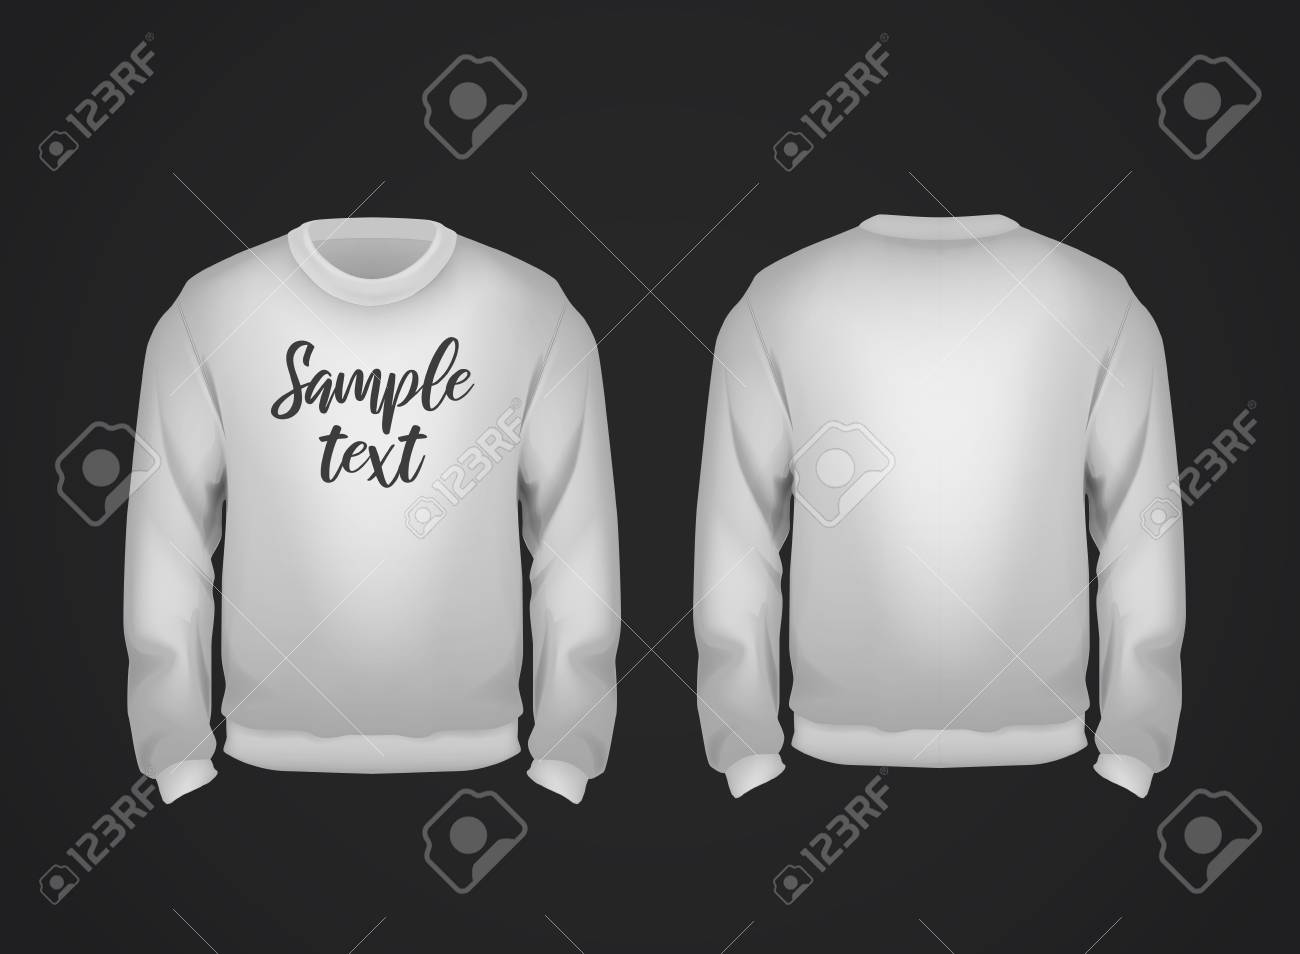 Gray men's sweatshirt template with sample text front and back view. Hoodie for branding or advertising. - 125276389